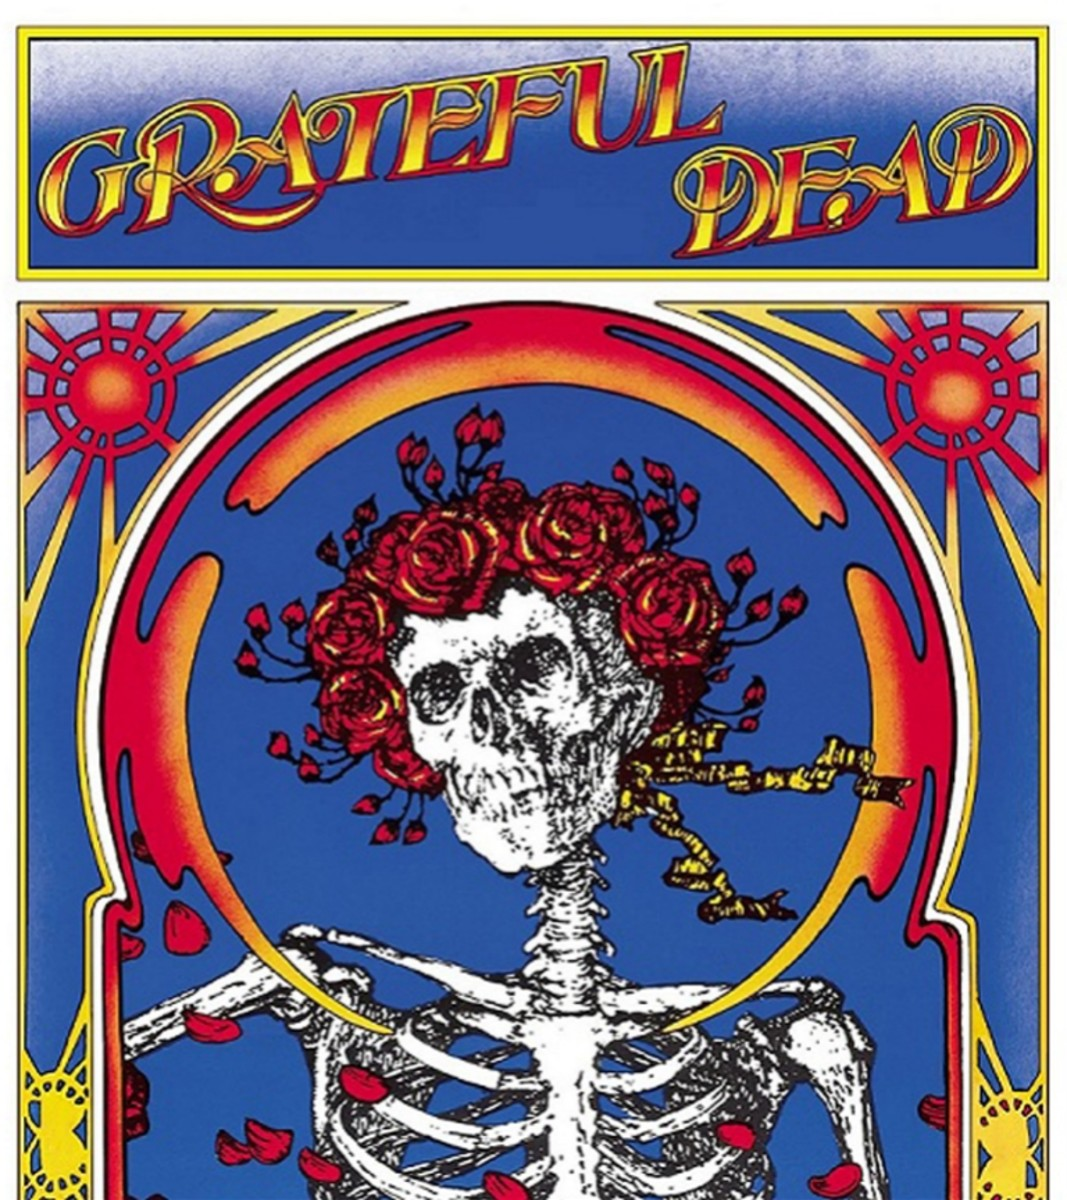 "Grateful Dead ""Skull & Roses"" Warner Brothers 2WS1935  2 12"" LP Vinyl Record Set US Pressing (1971) Album Cover Art by Alton Kelley & Stanley Mouse"